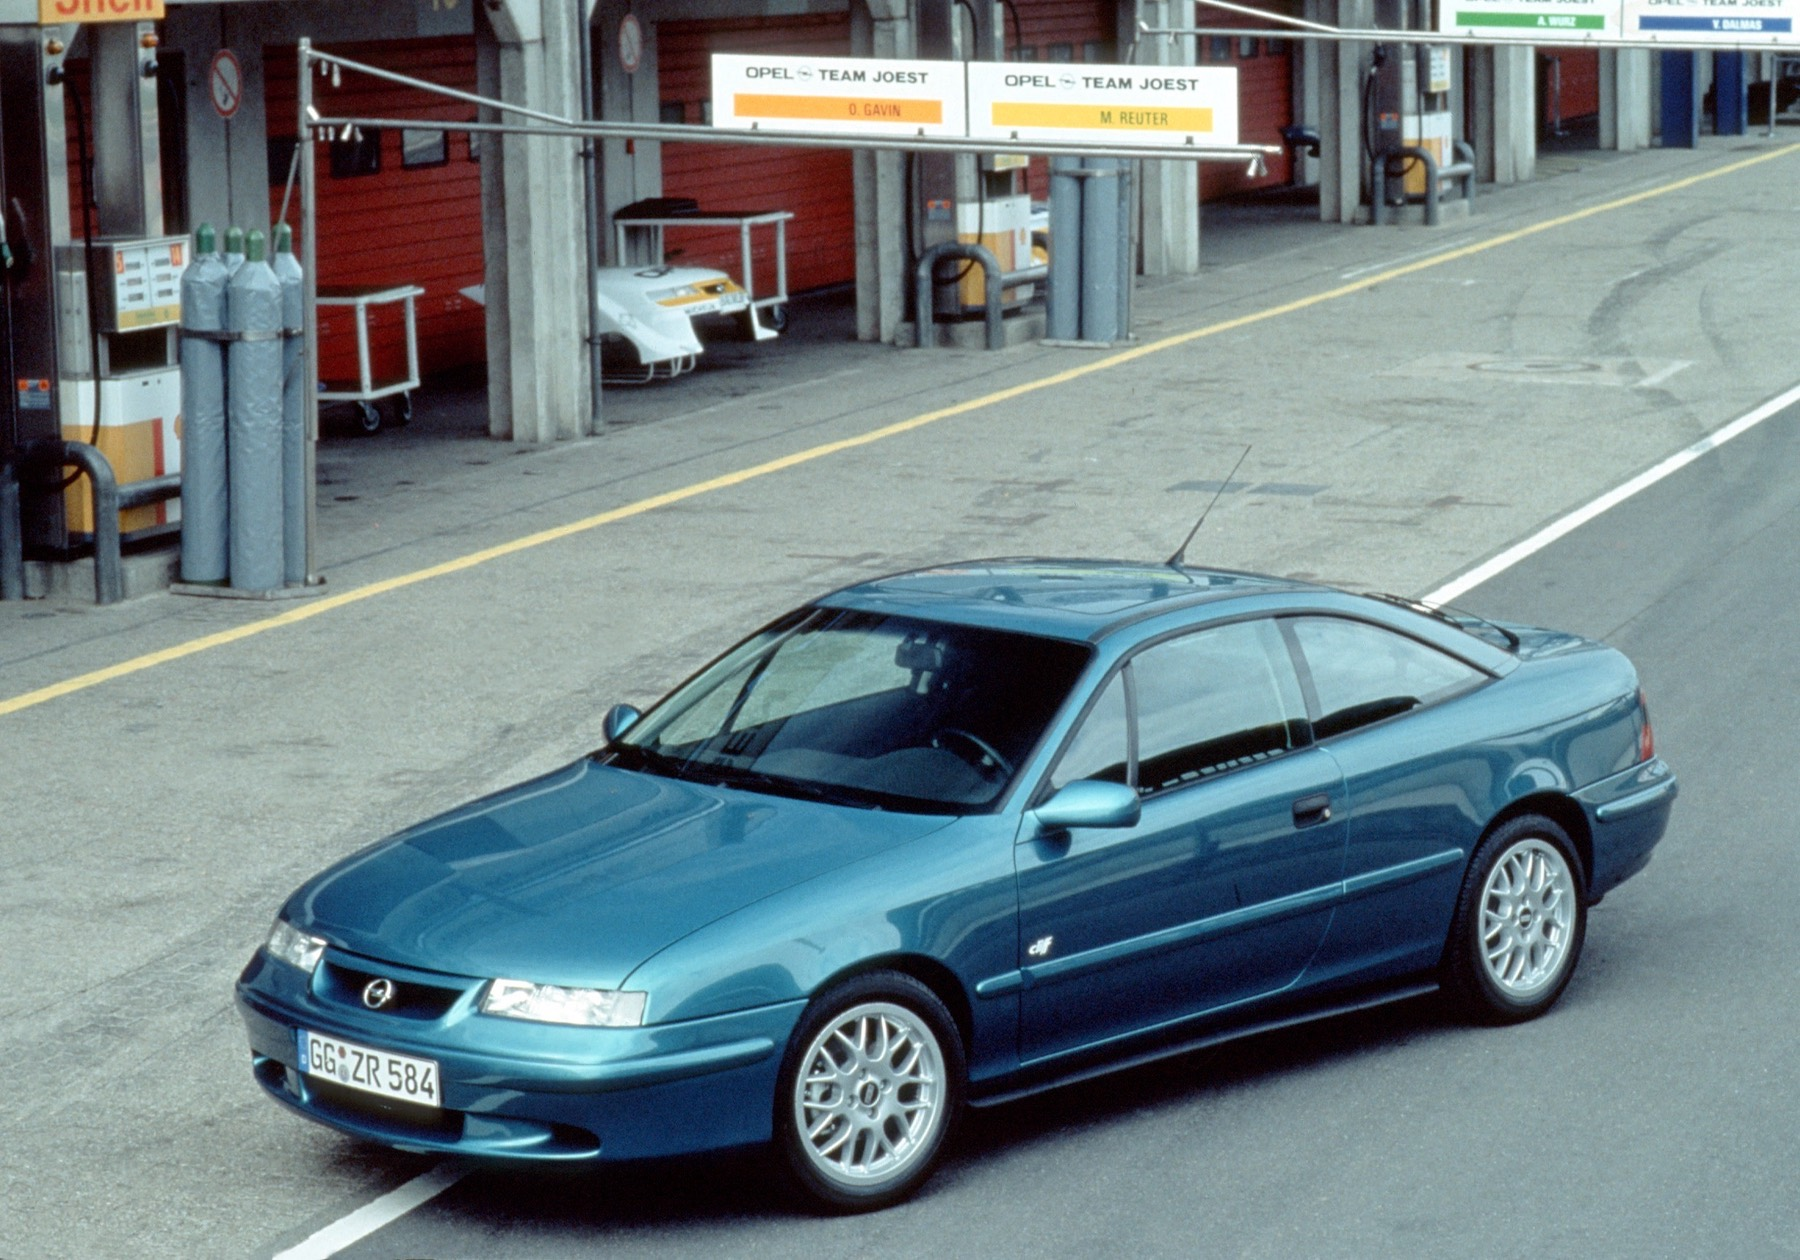 For real fans: Opel Calibra Cliff Motorsport Edition